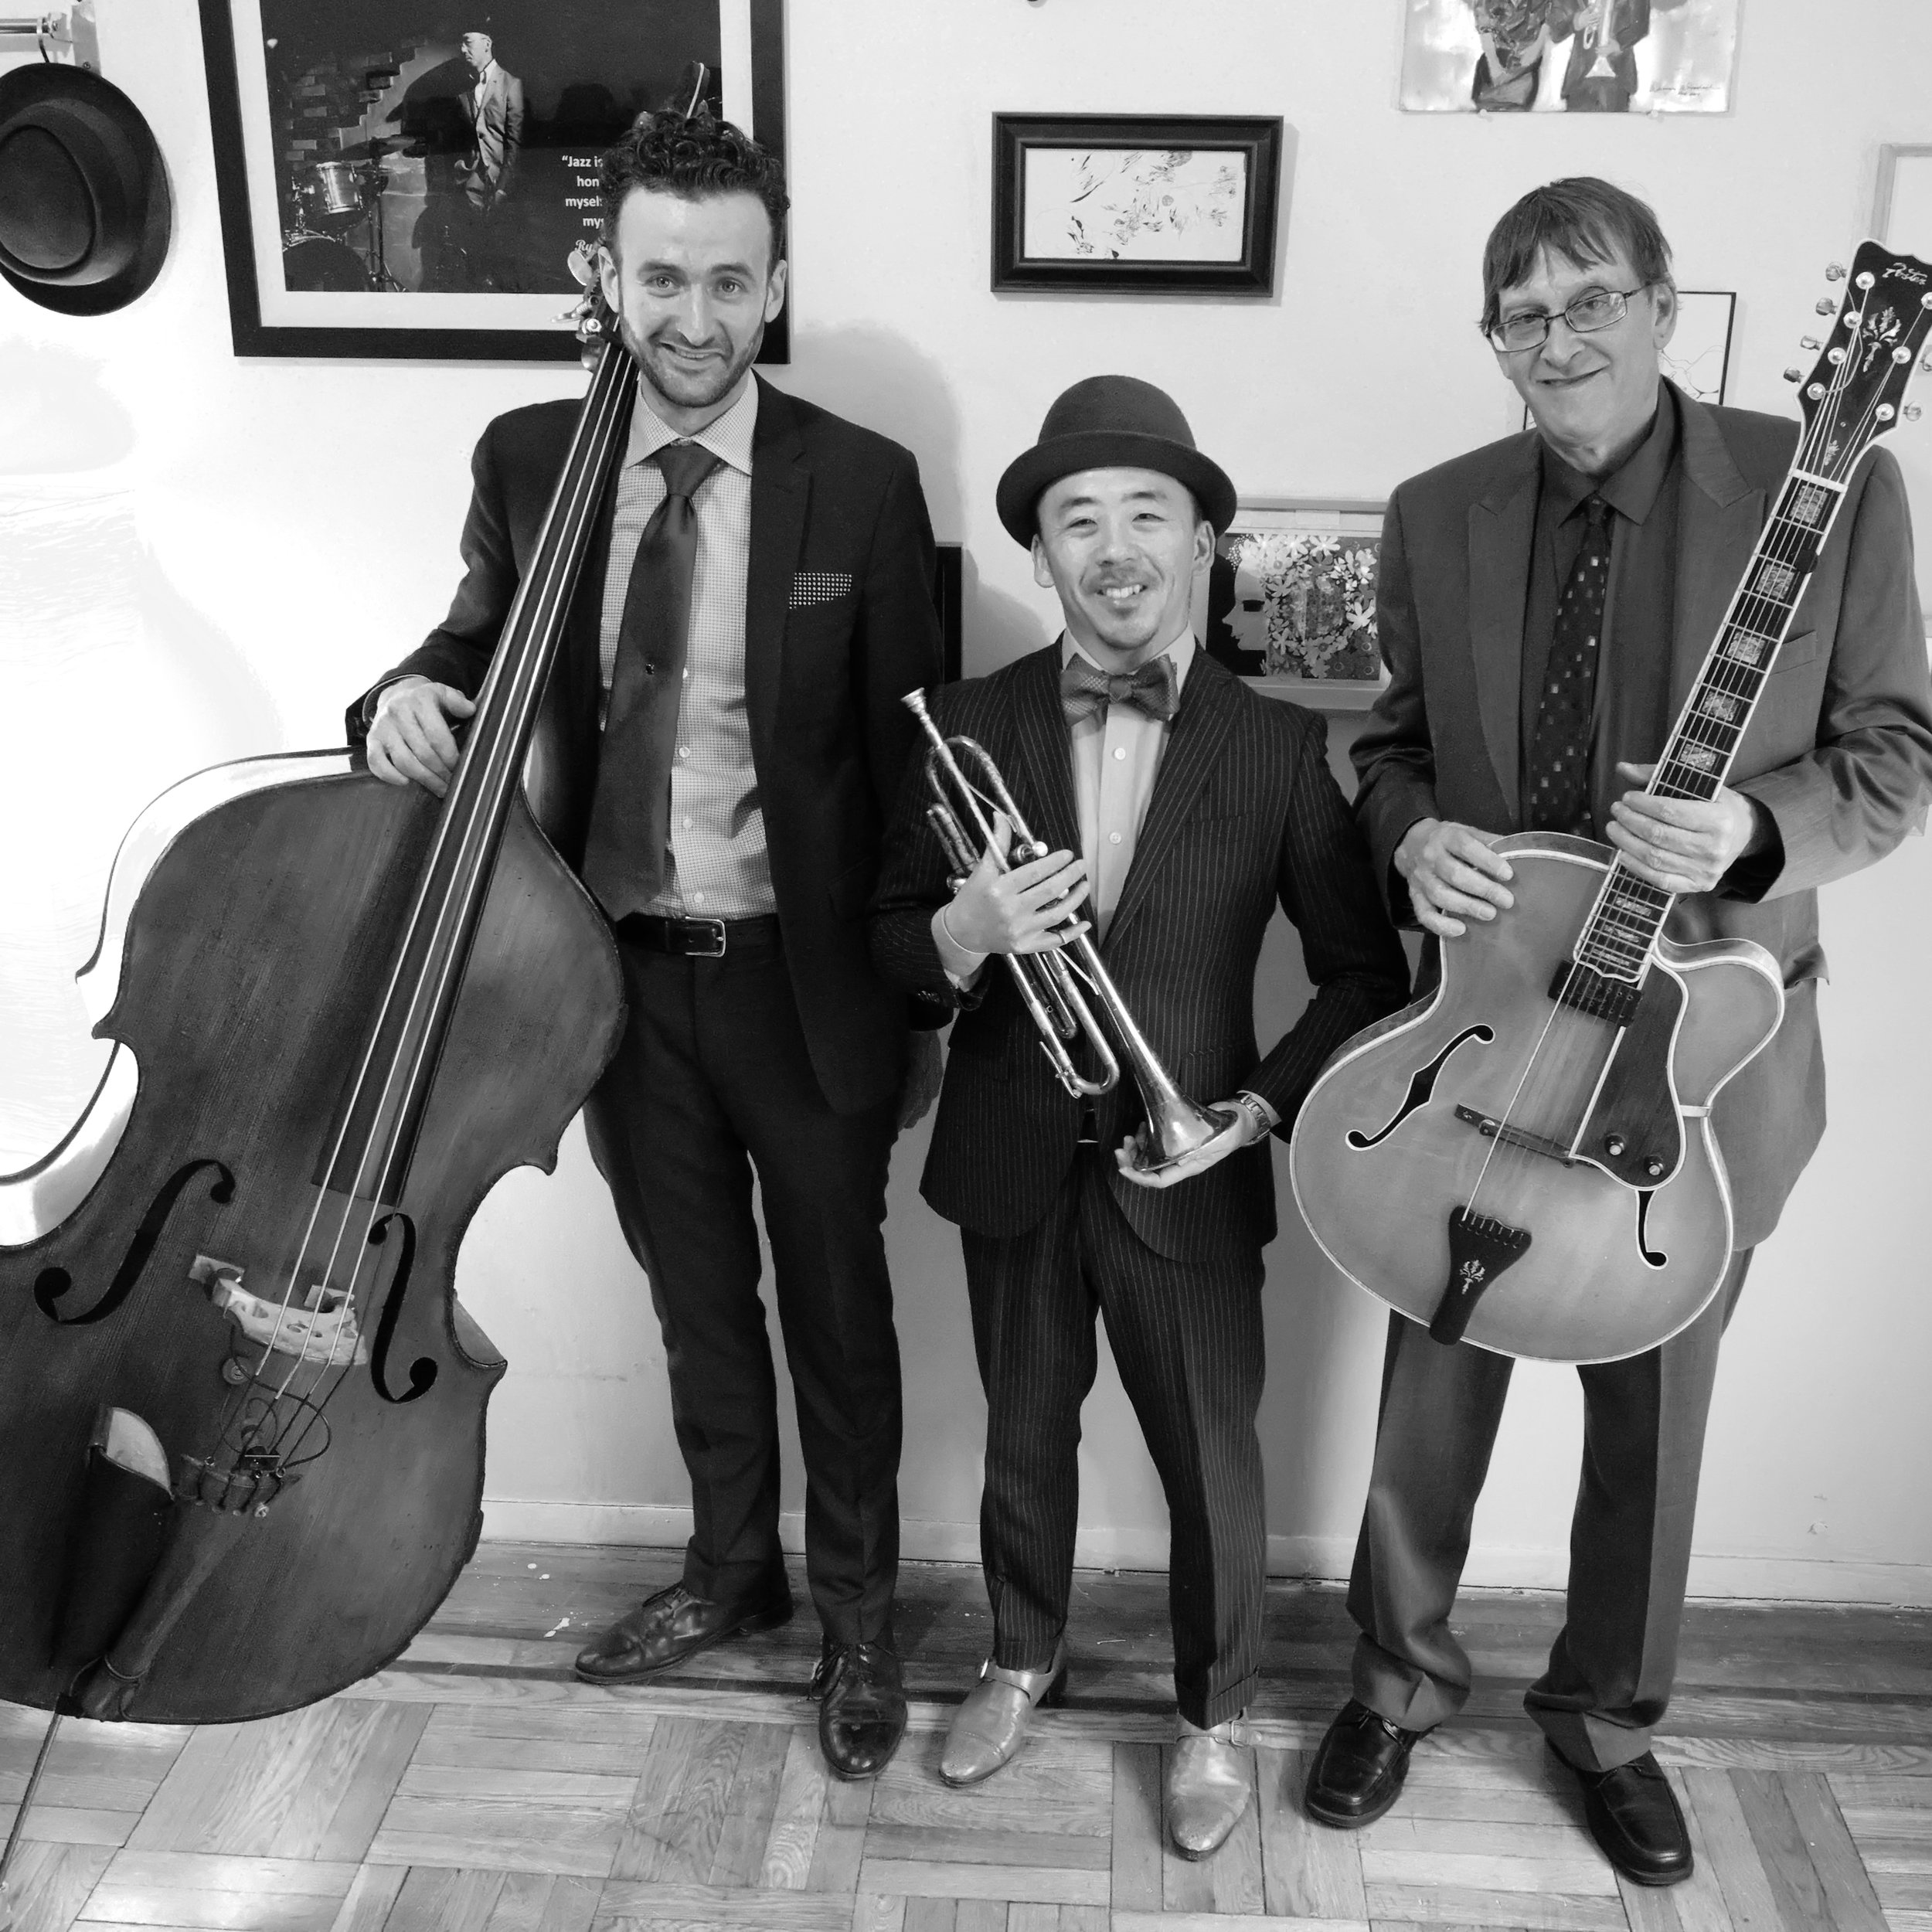 The B# Trio   Upbeat jazz favorites from the 1930s and 40s  →  Book the B# Trio  →  Learn More